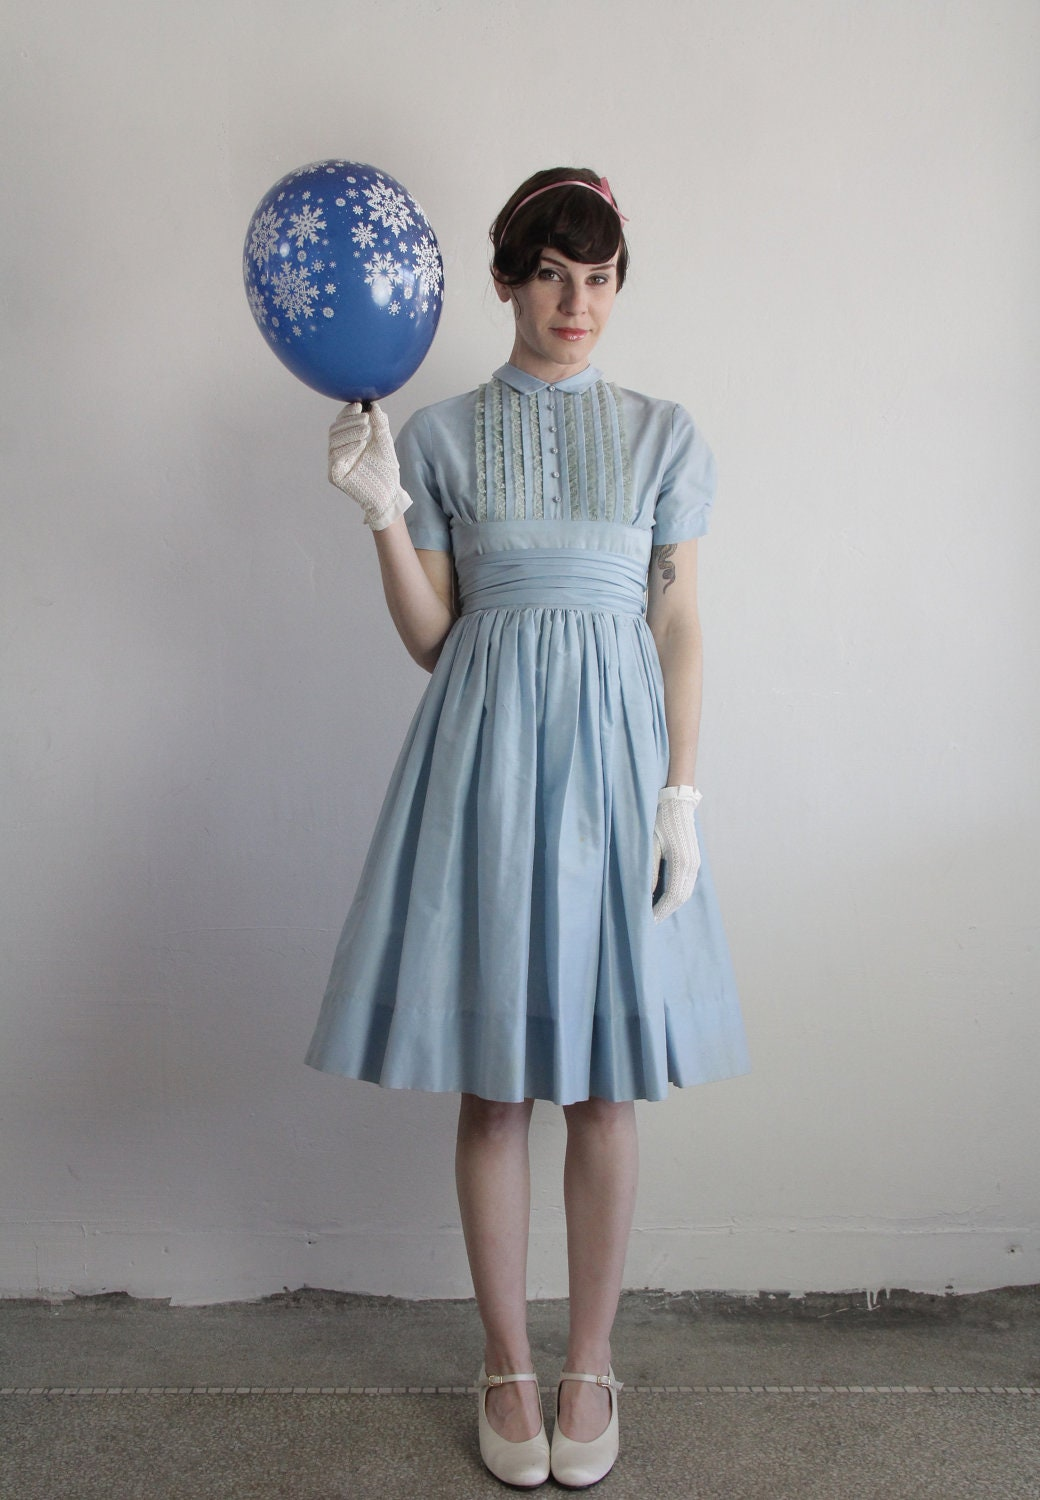 Vintage 50s Dress Baby Blue Lace Ruffle 1950s Formal Gown